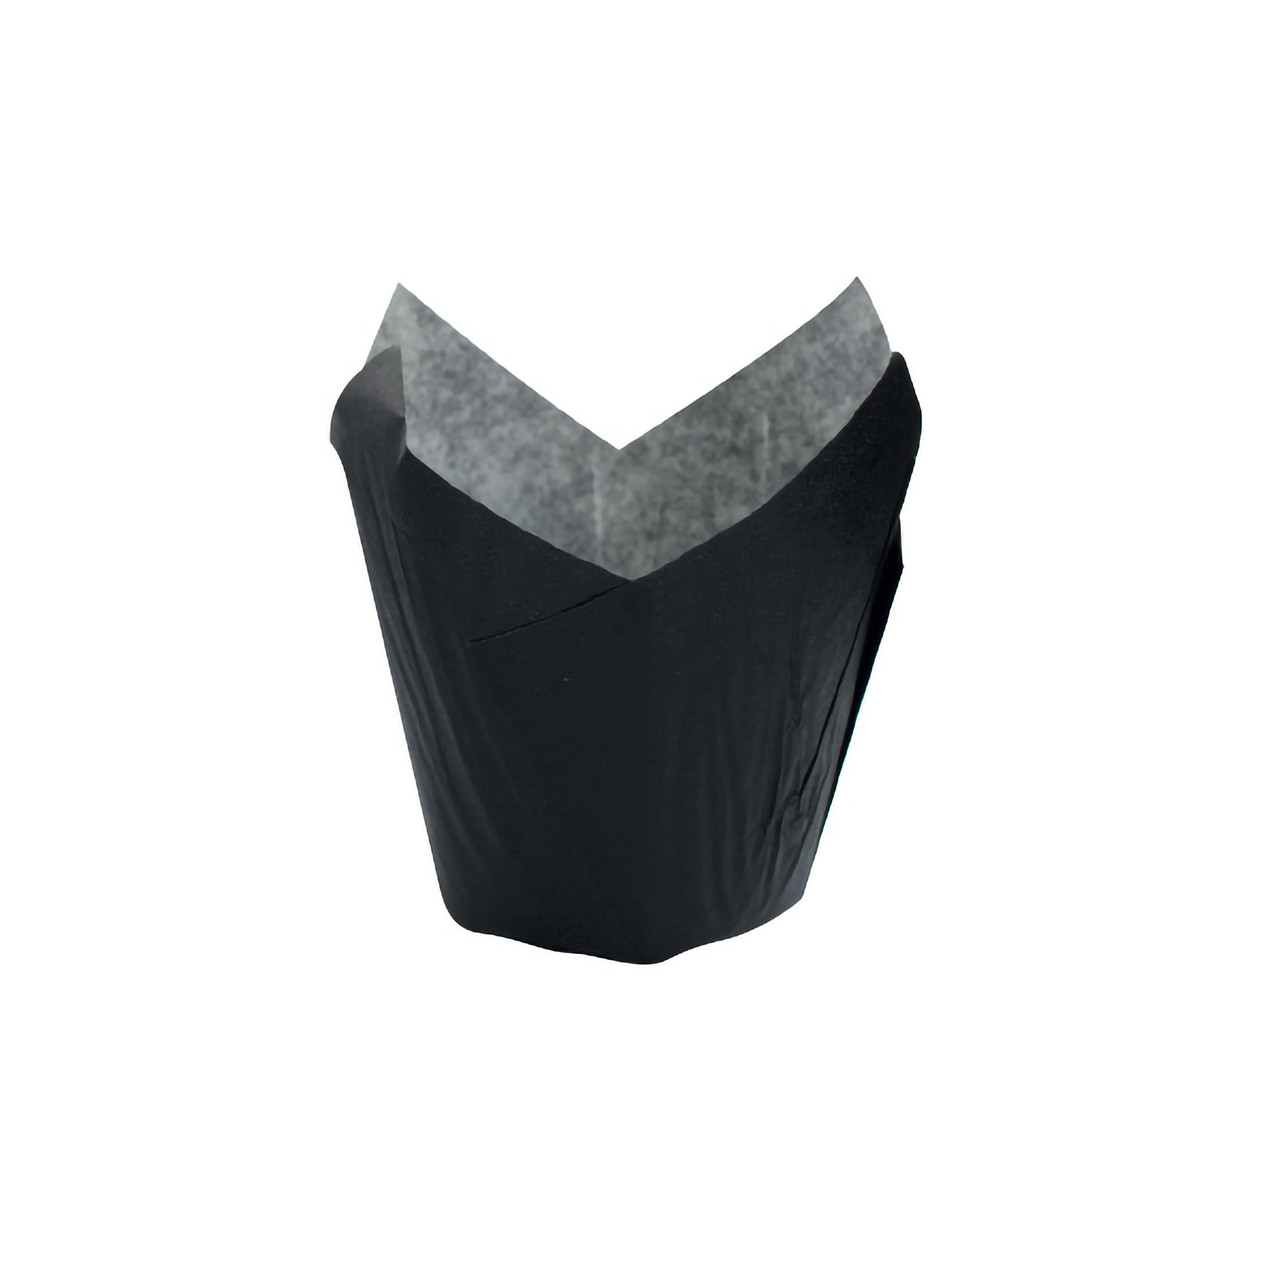 Tulip Black Greaseproof Baking Cup -8oz Dia:4.15in Flat:L:6.8 x W:6.8in